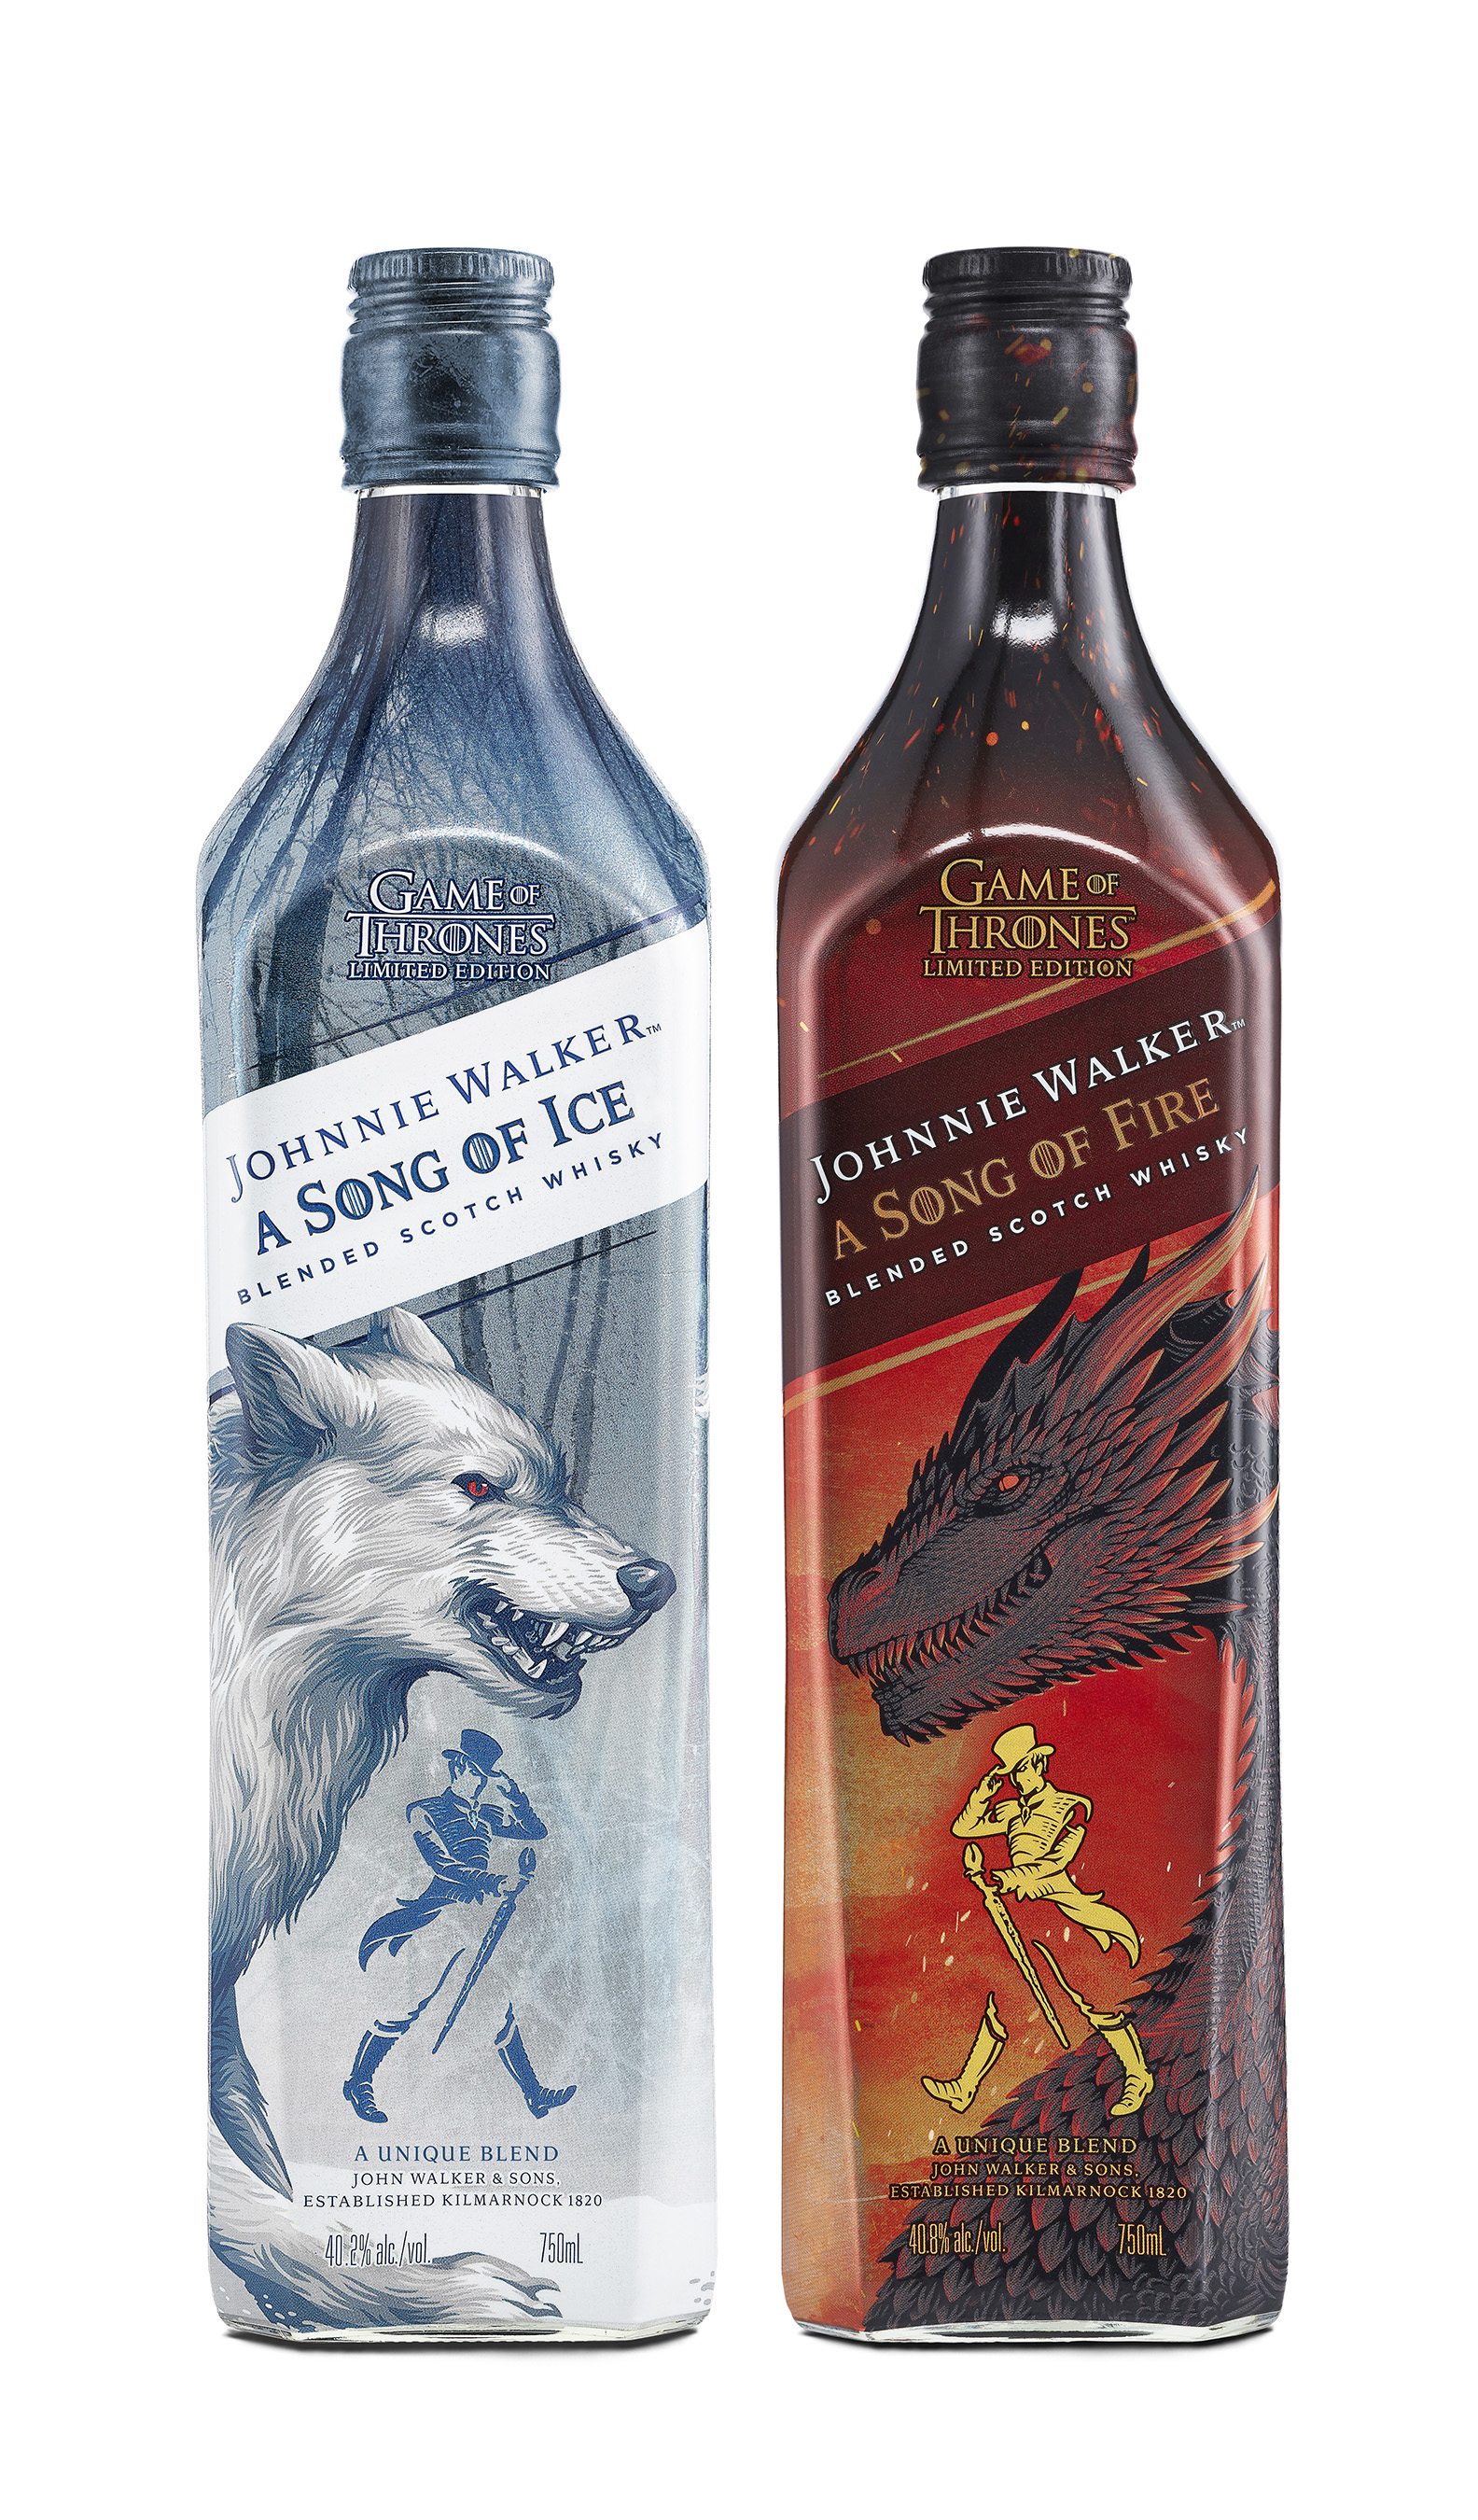 Introducing Johnnie Walker A Song of Ice and A Song of Fire in celebration of the enduring legacy of Game of Thrones.